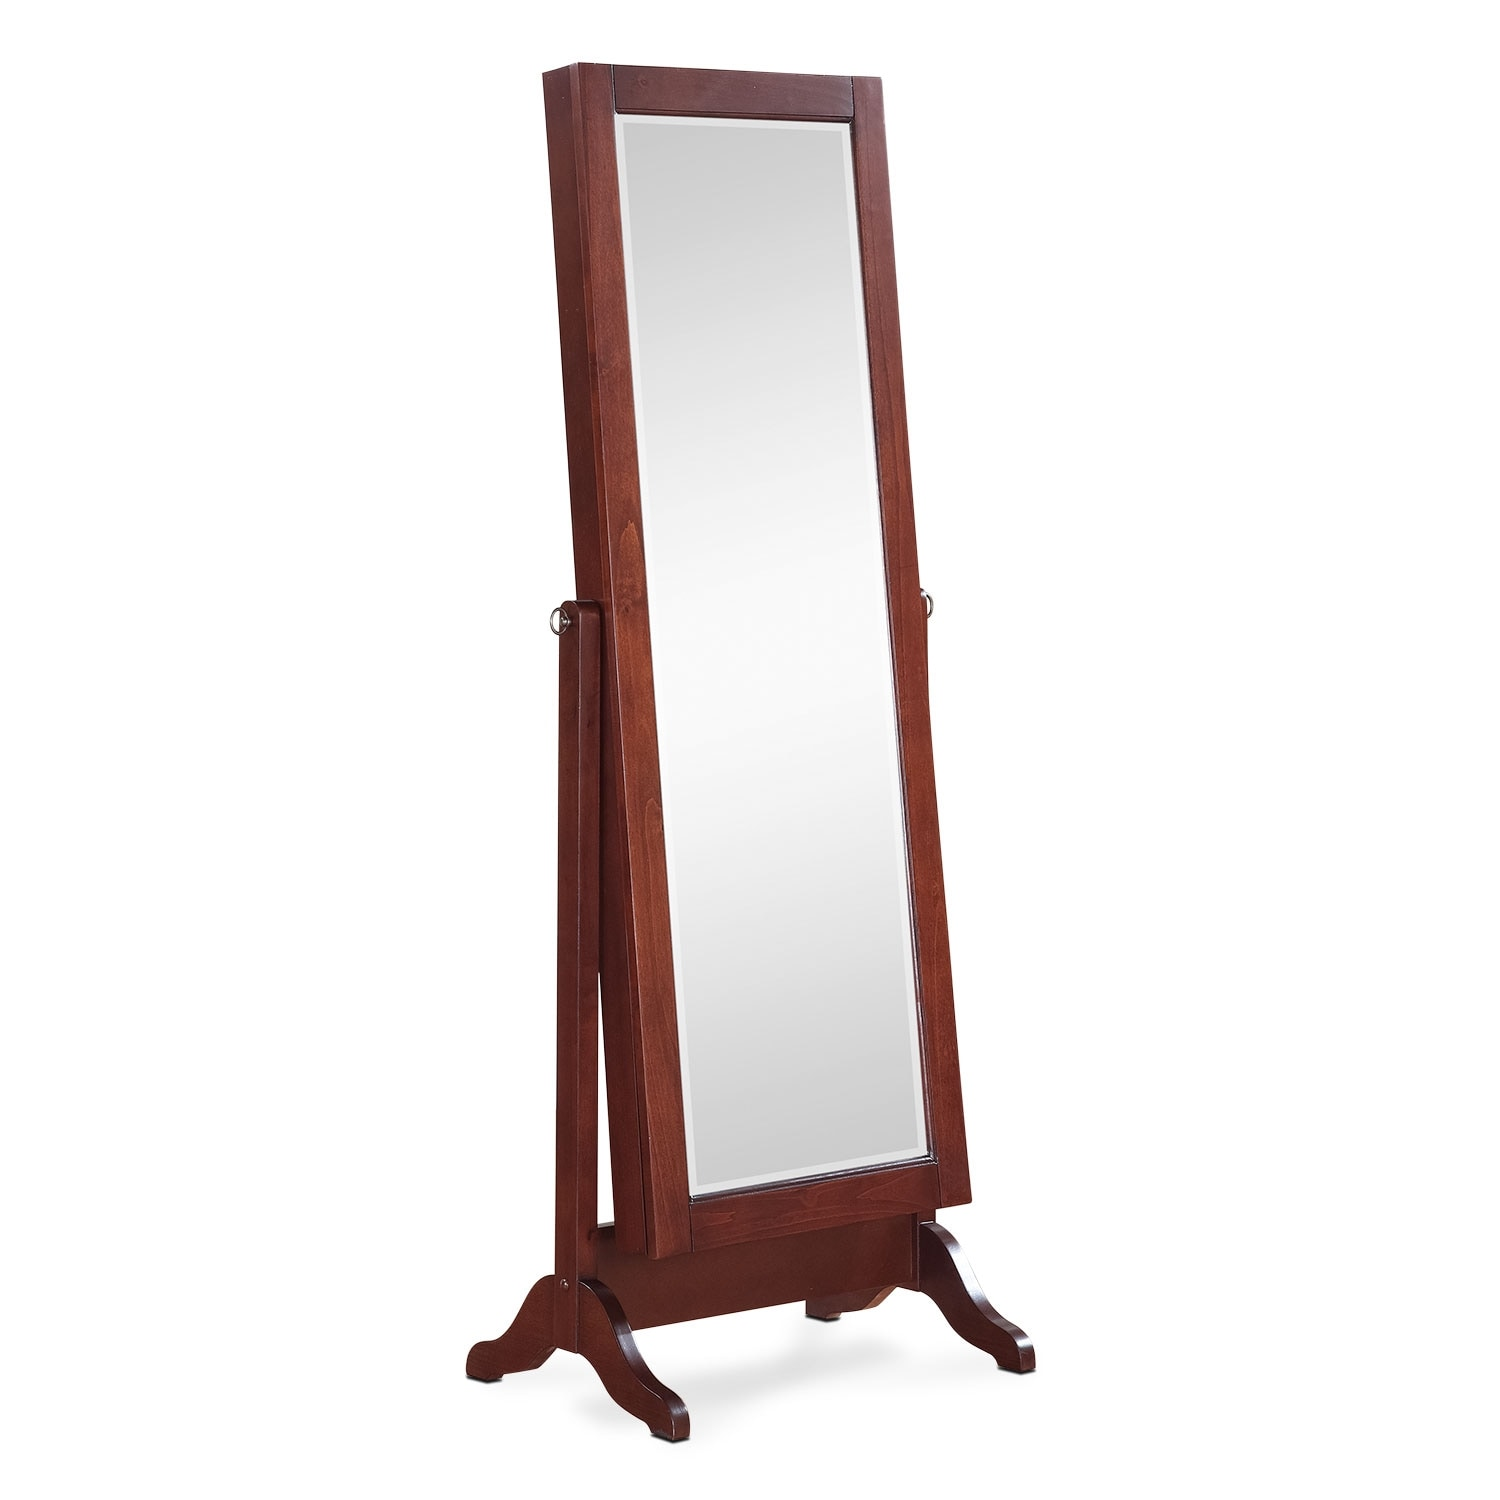 Loren Cheval Storage Mirror - Cherry